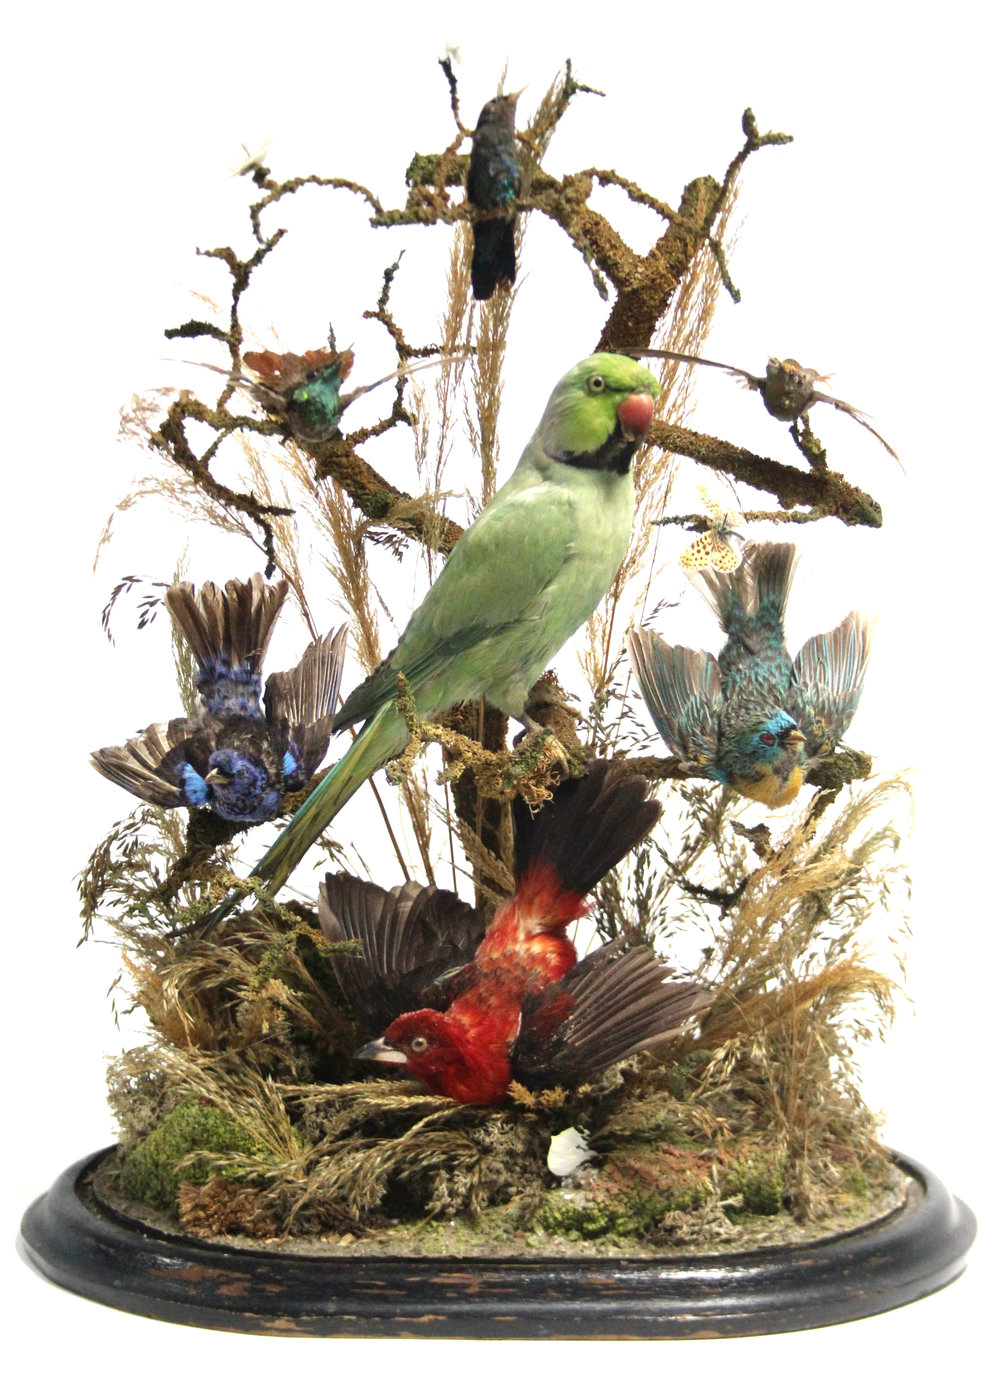 Sold For £500 A late 19thC Taxidermist's display